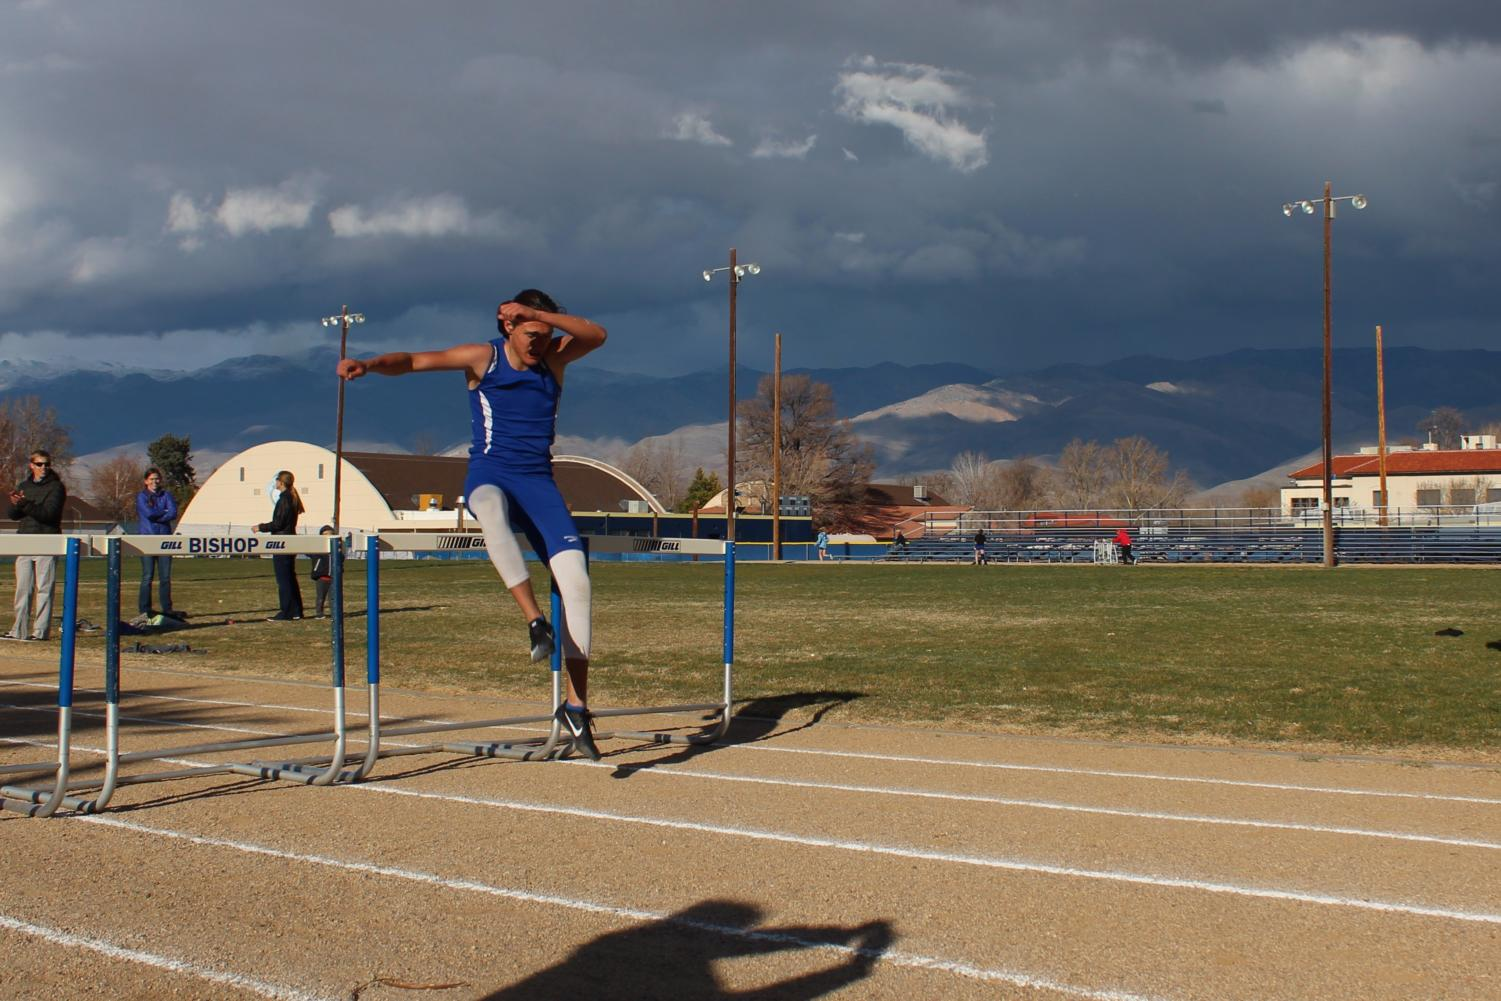 Jon Tait, a junior, completes the boys' 300 meter hurdles, marking the beginning of his hurdling career